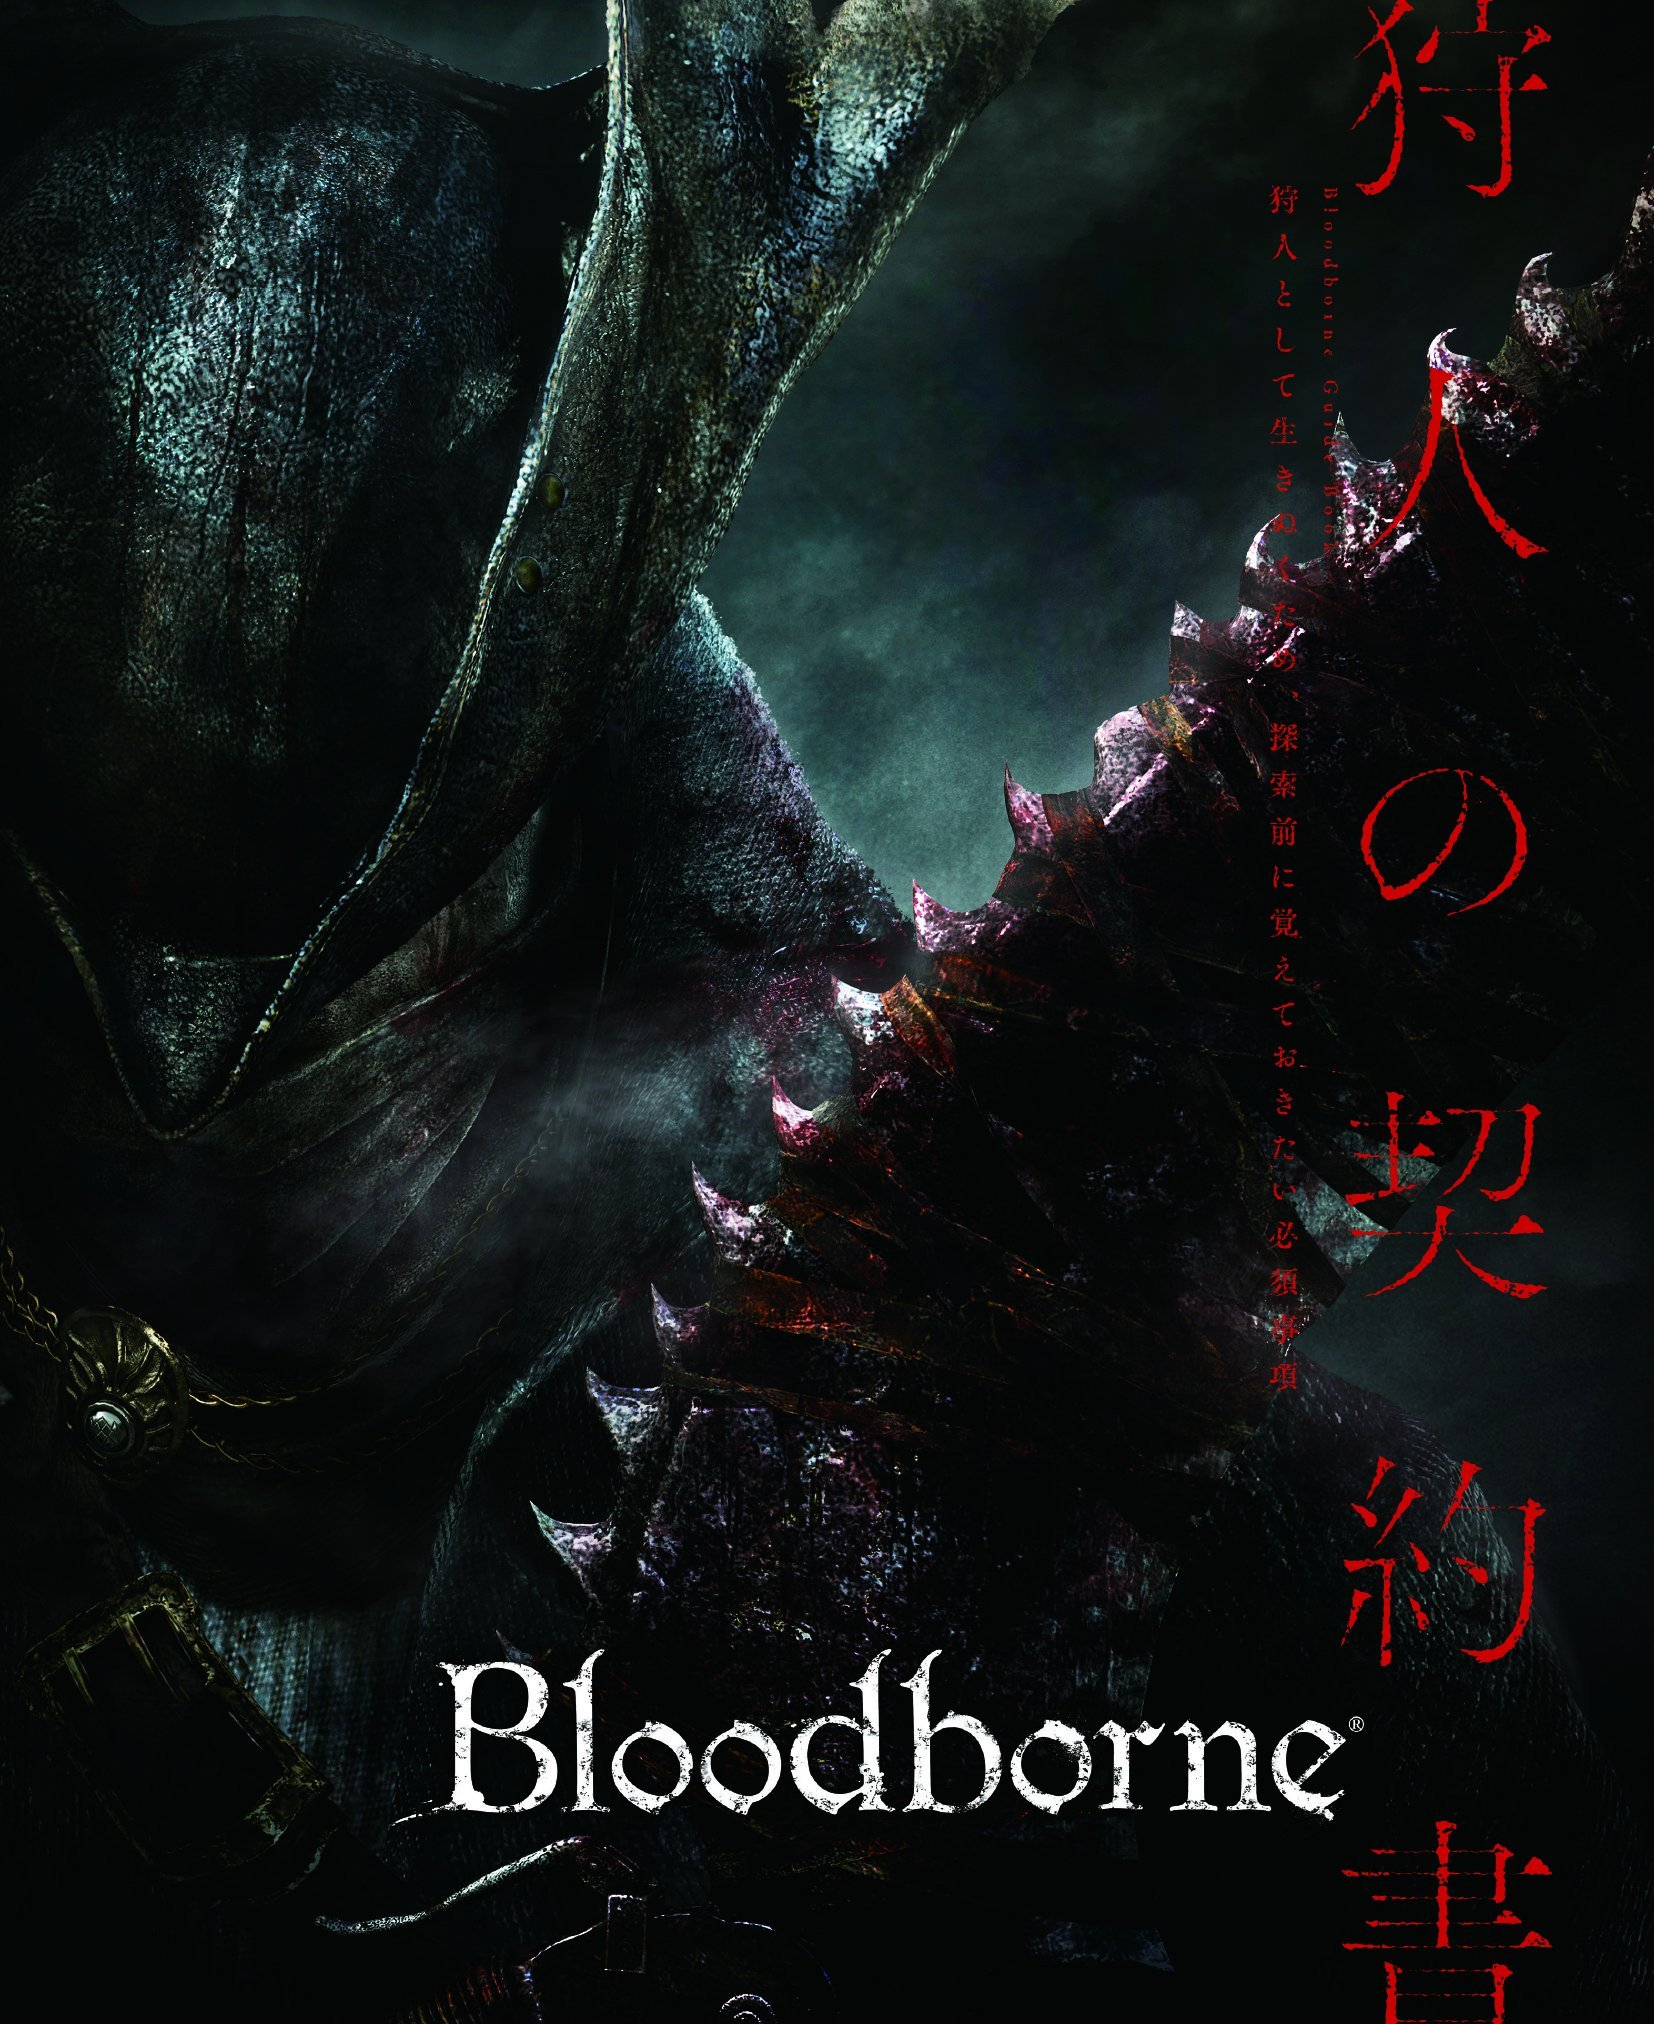 Bloodborne - Kariudo no keiyakusho (Vol.587 supplement) (April 9, 2015)